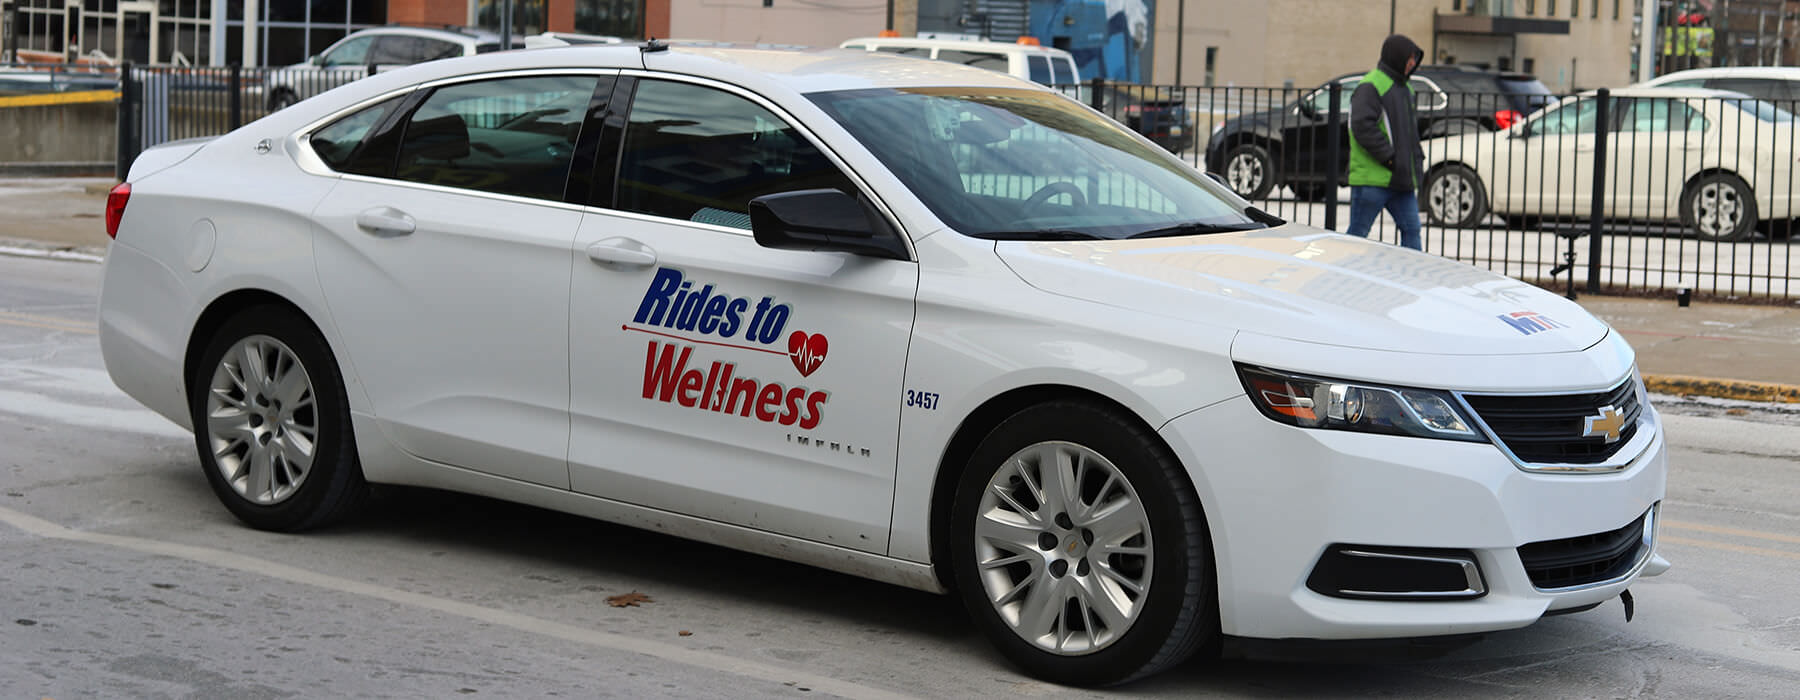 A Rides to Wellness vehicle.